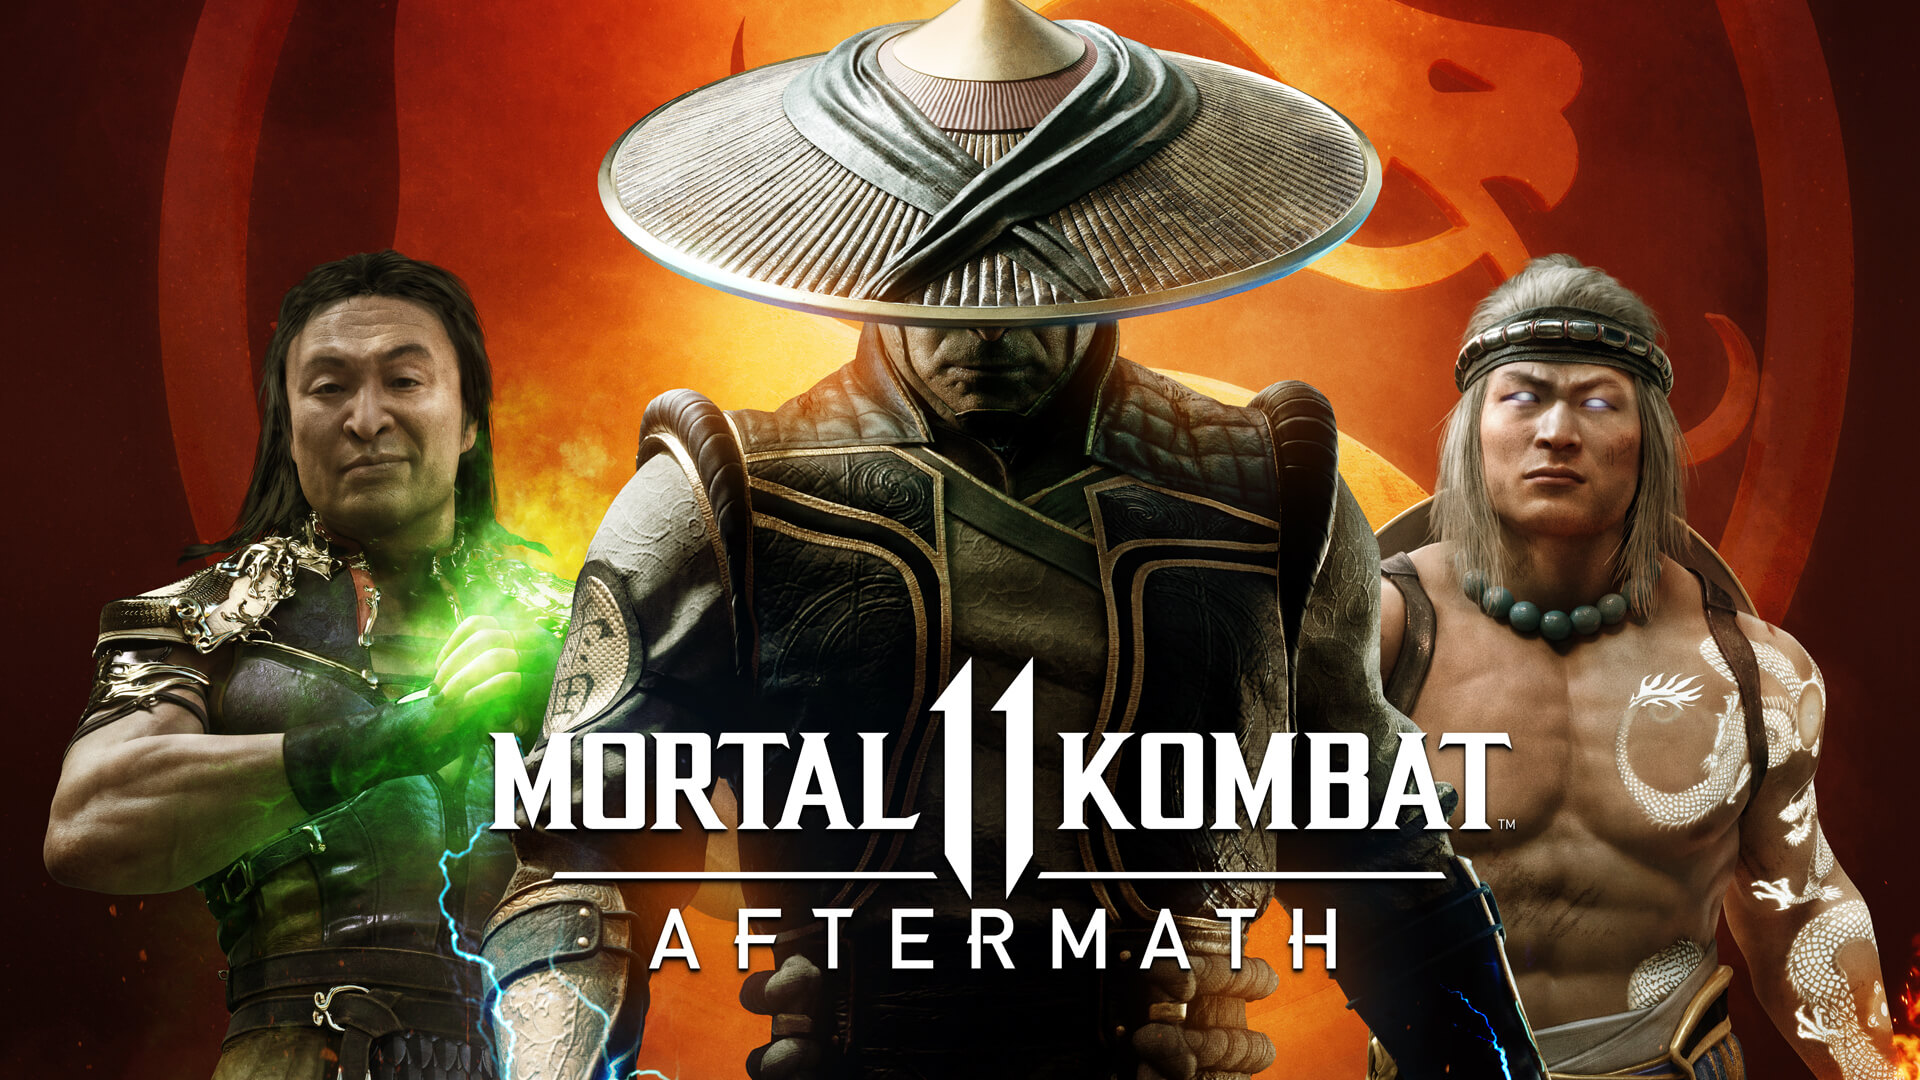 Mortal Kombat 11: Aftermath Review - The Fighting Kontinues